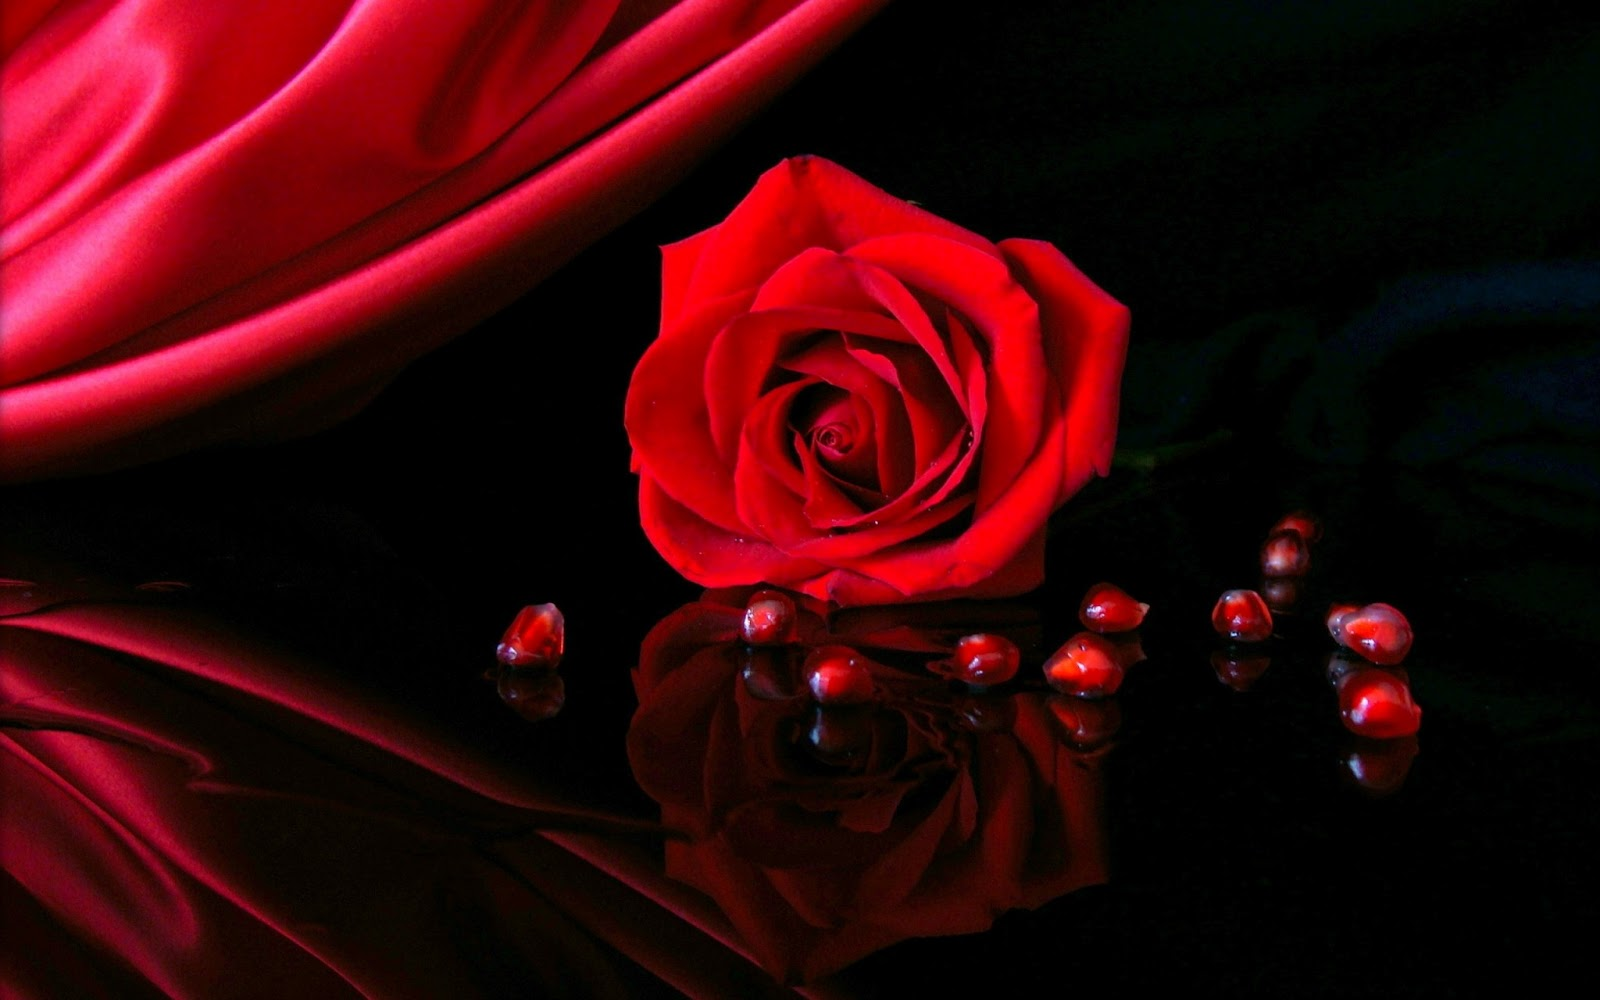 Cute Red Rose Love Wallpaper Hd Best Iphone Wallpapers